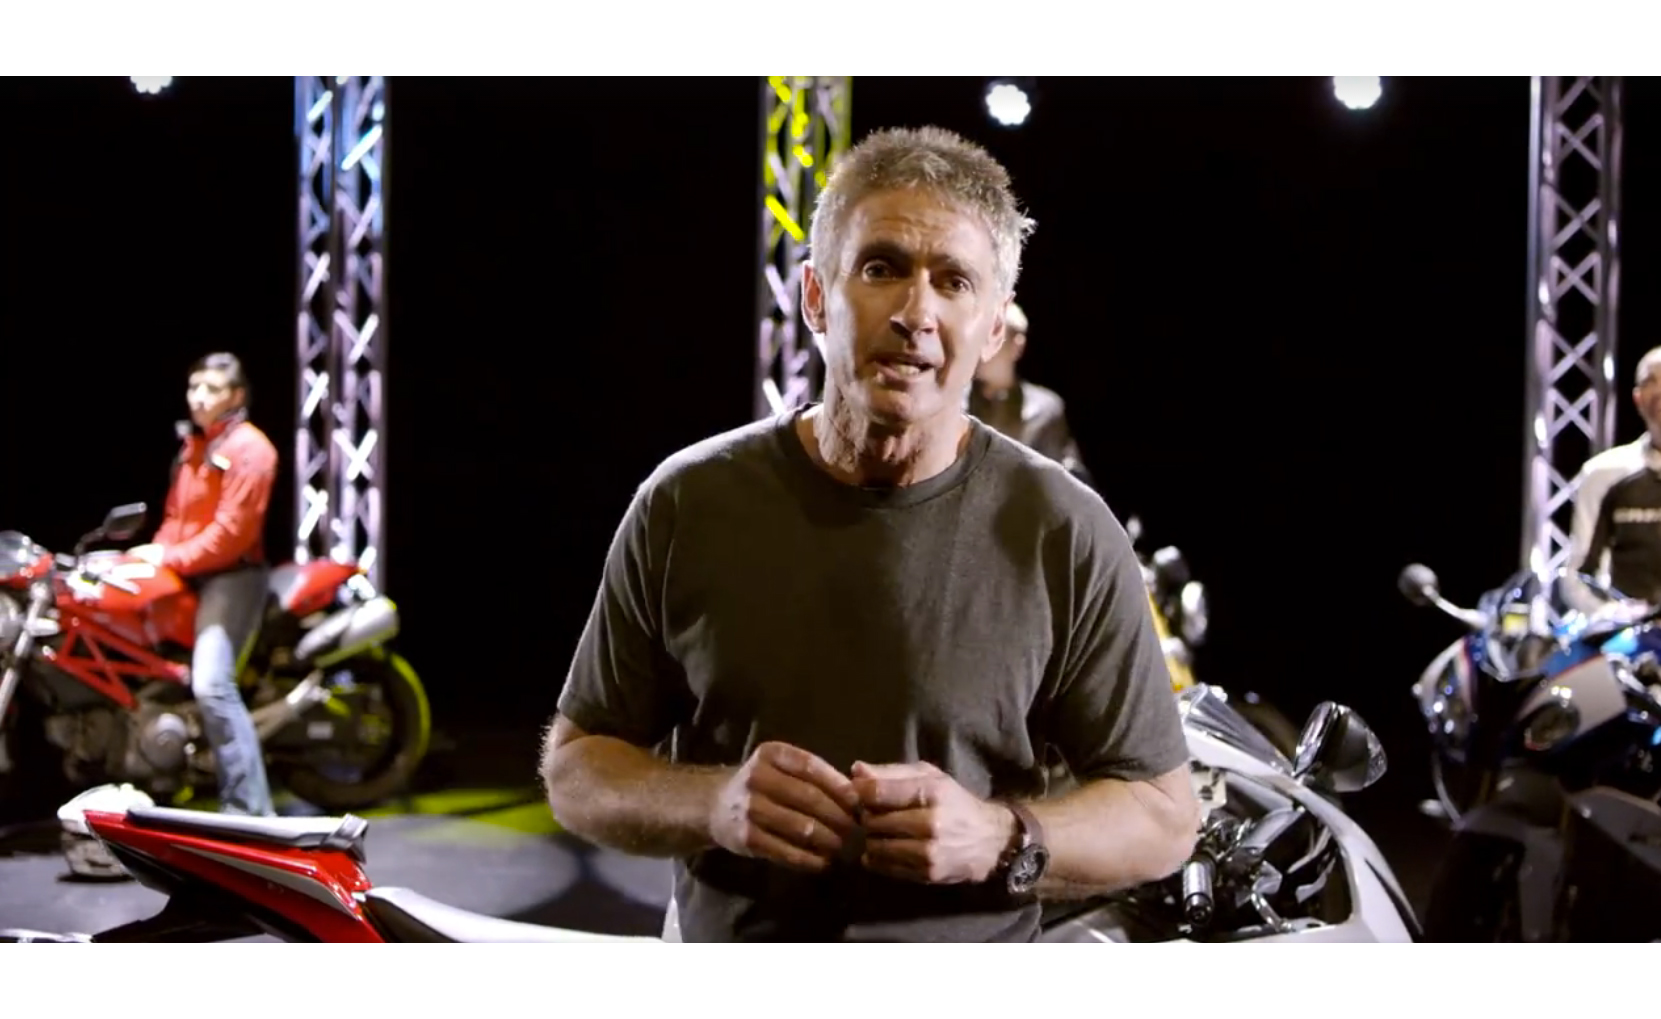 Cornering Tips For Road Riders, From Mick Doohan